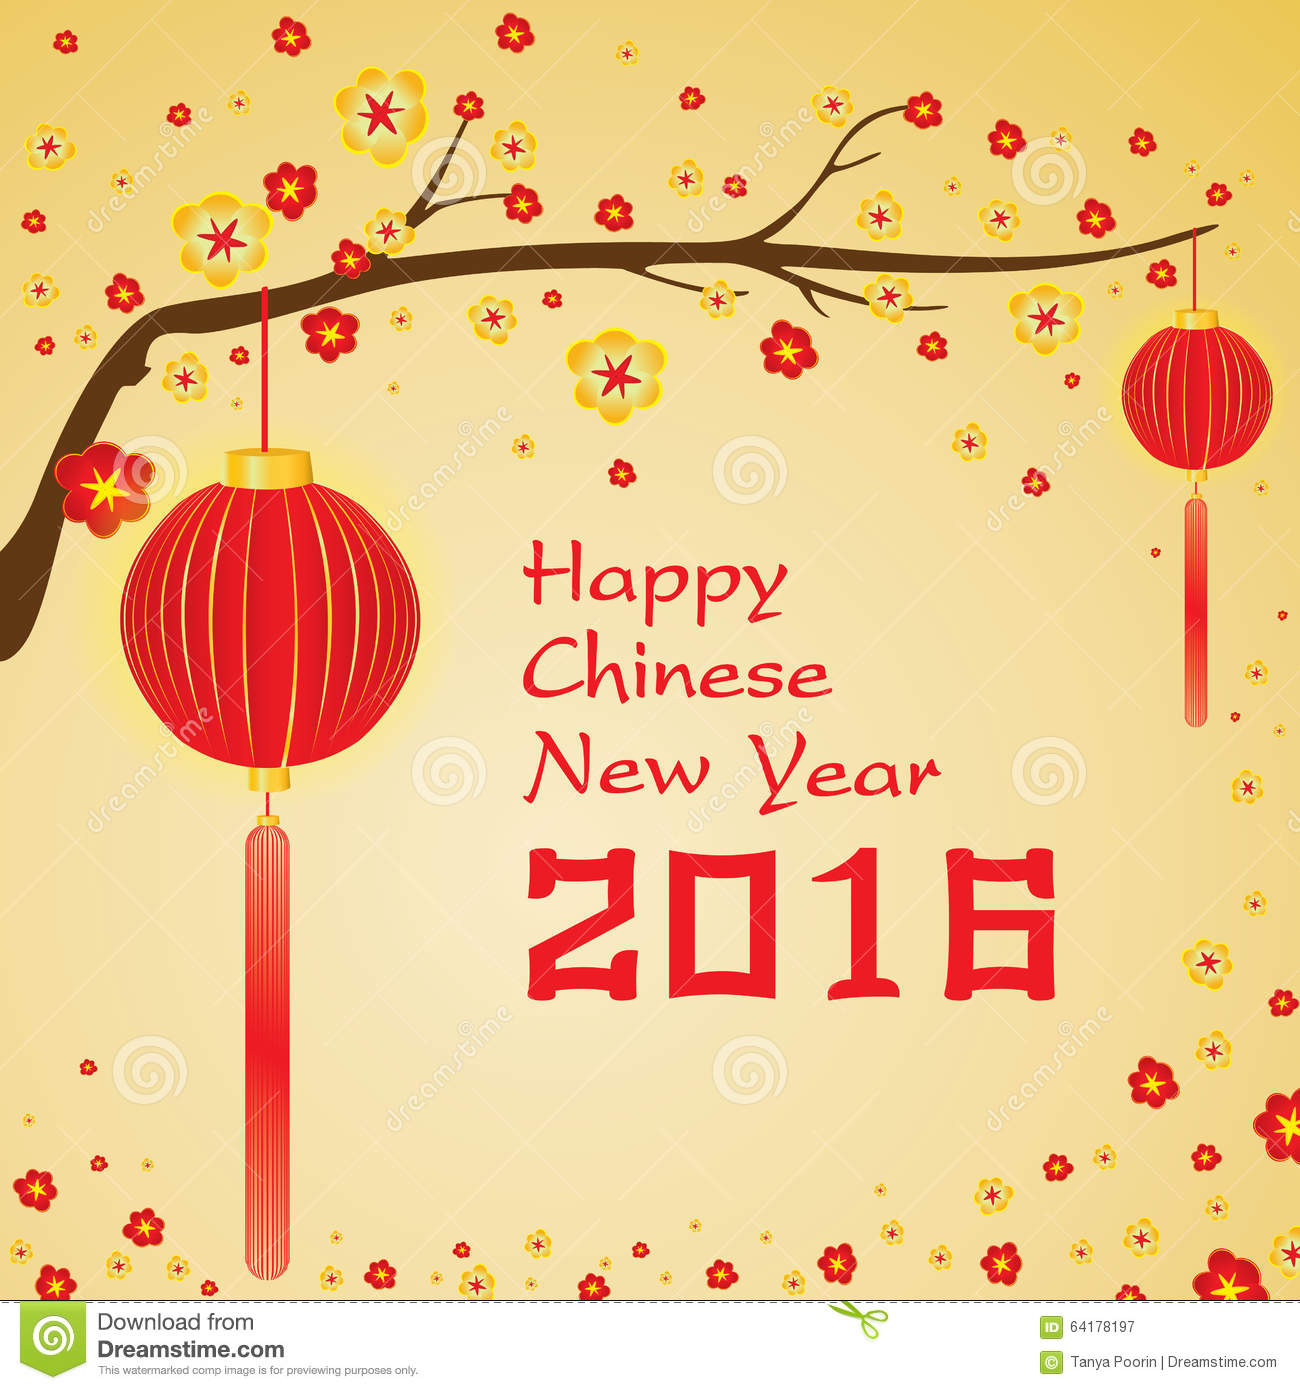 happy chinese new year 2016 card and colorful flower on gold background